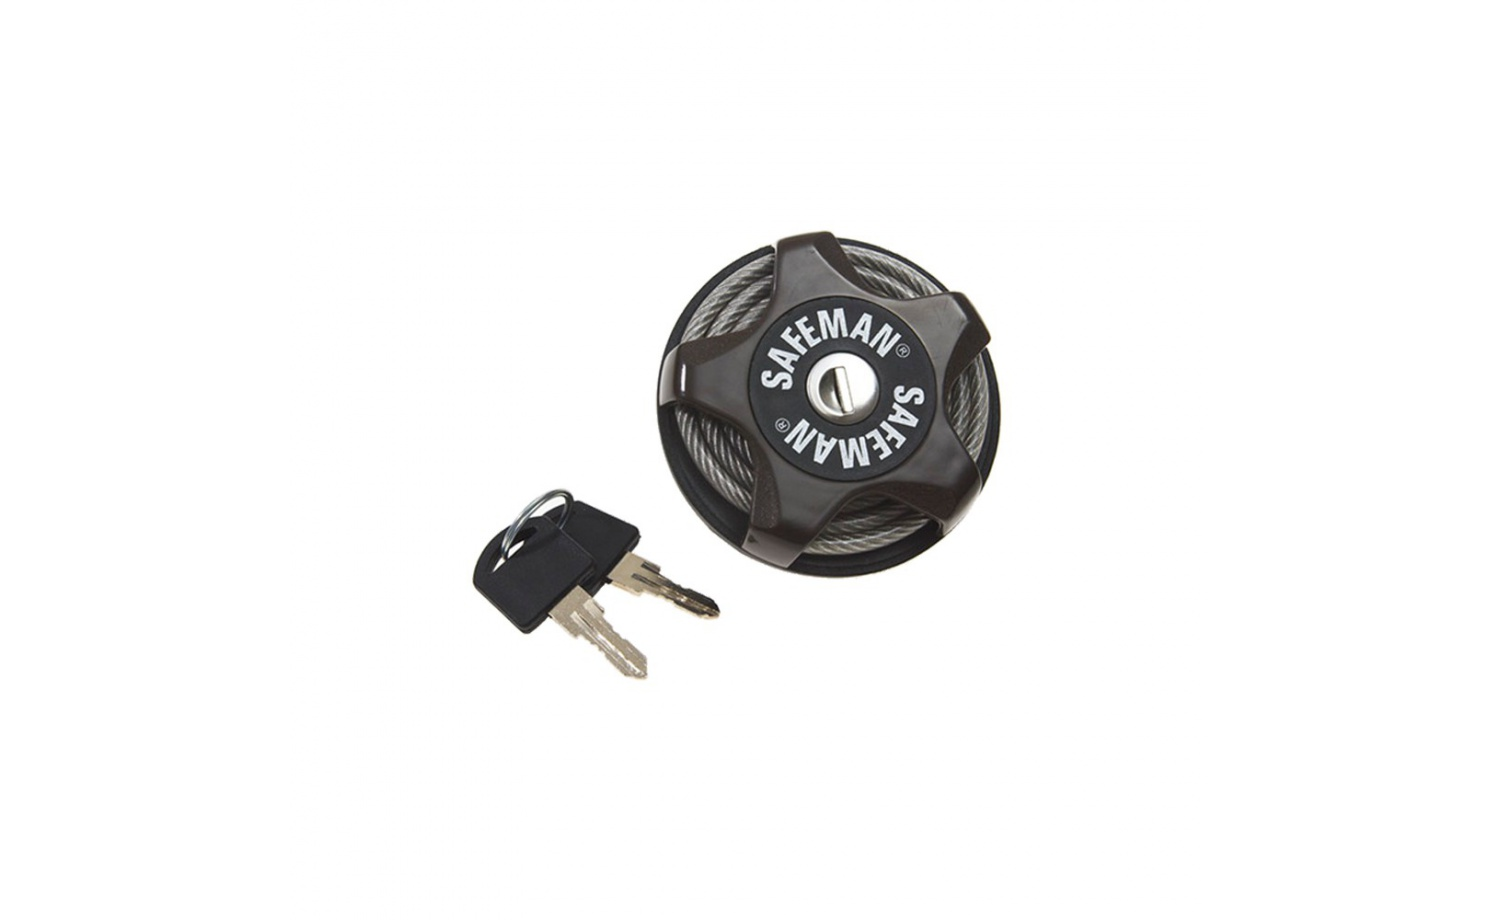 Multifunction lock SAFEMAN®